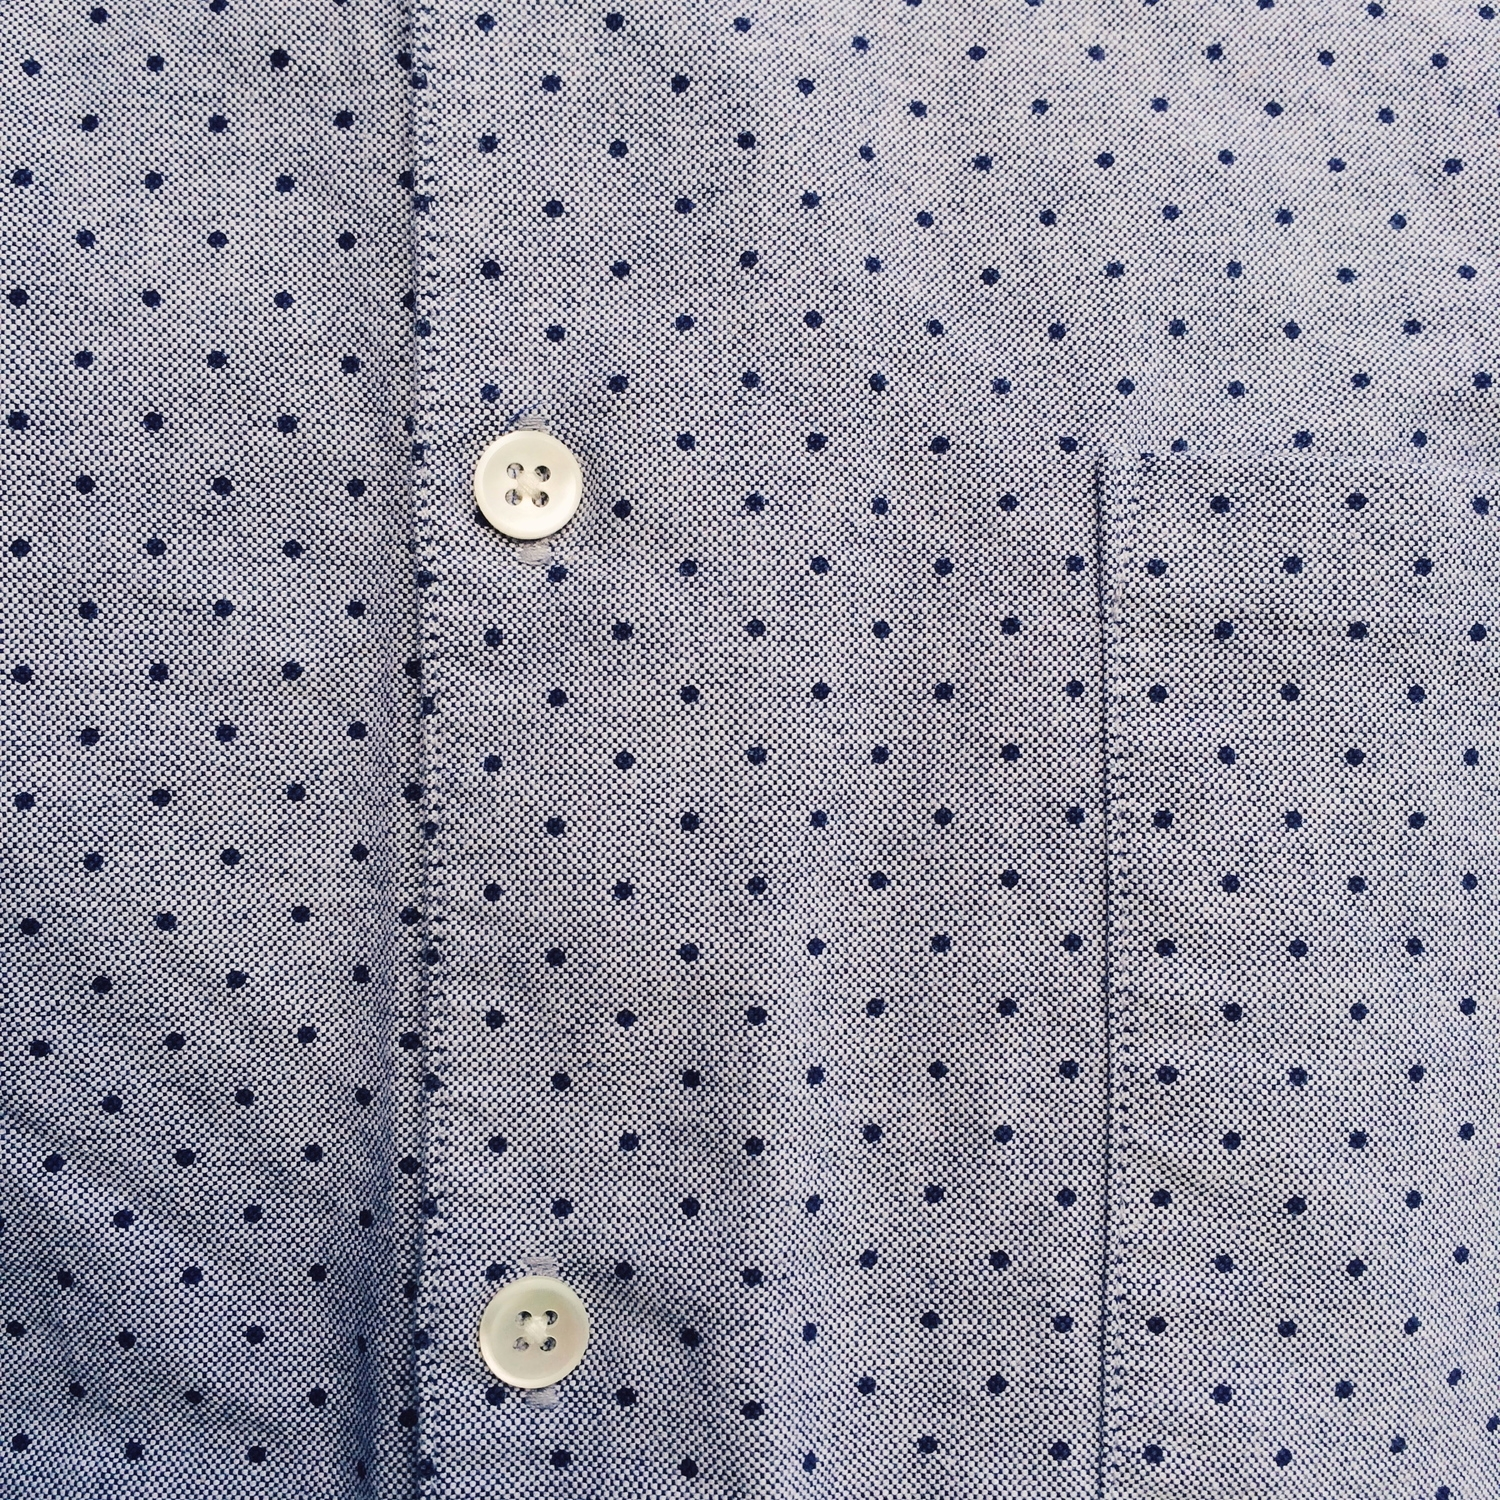 these polka-dots, on hhh's shirt.